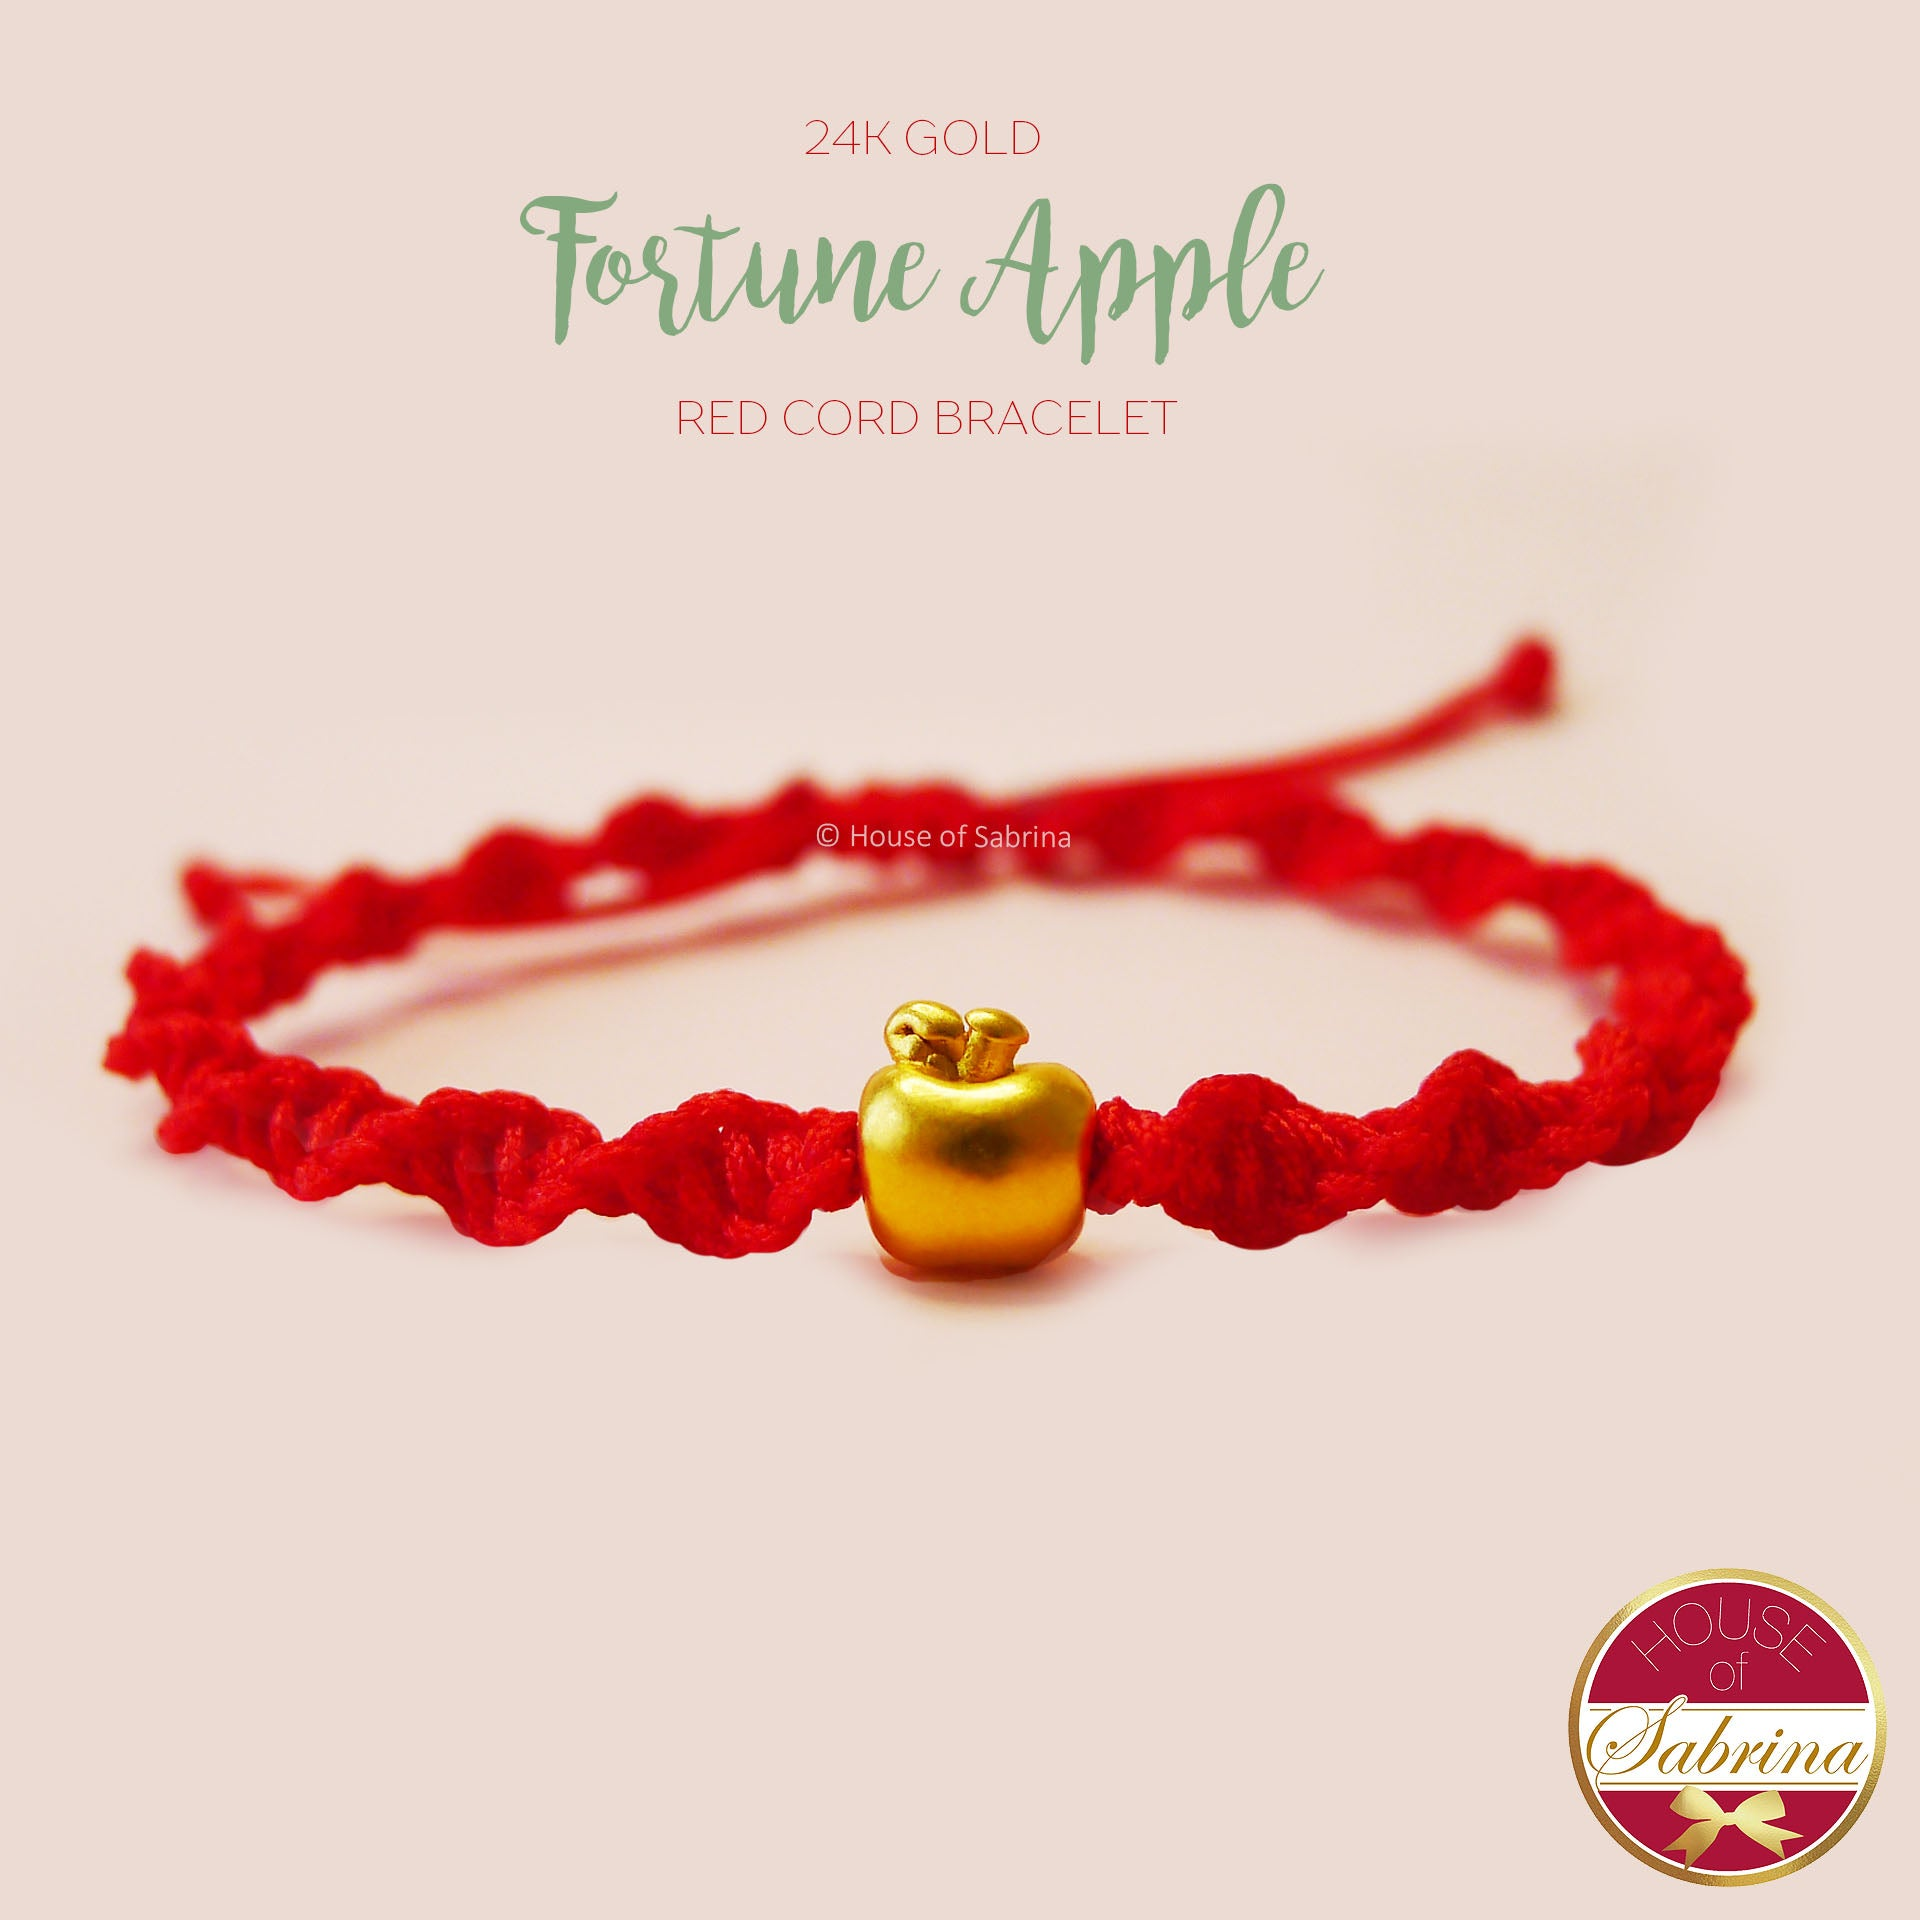 24K GOLD MINI FORTUNE APPLE ON RED CORD LUCKY CHARM BRACELET